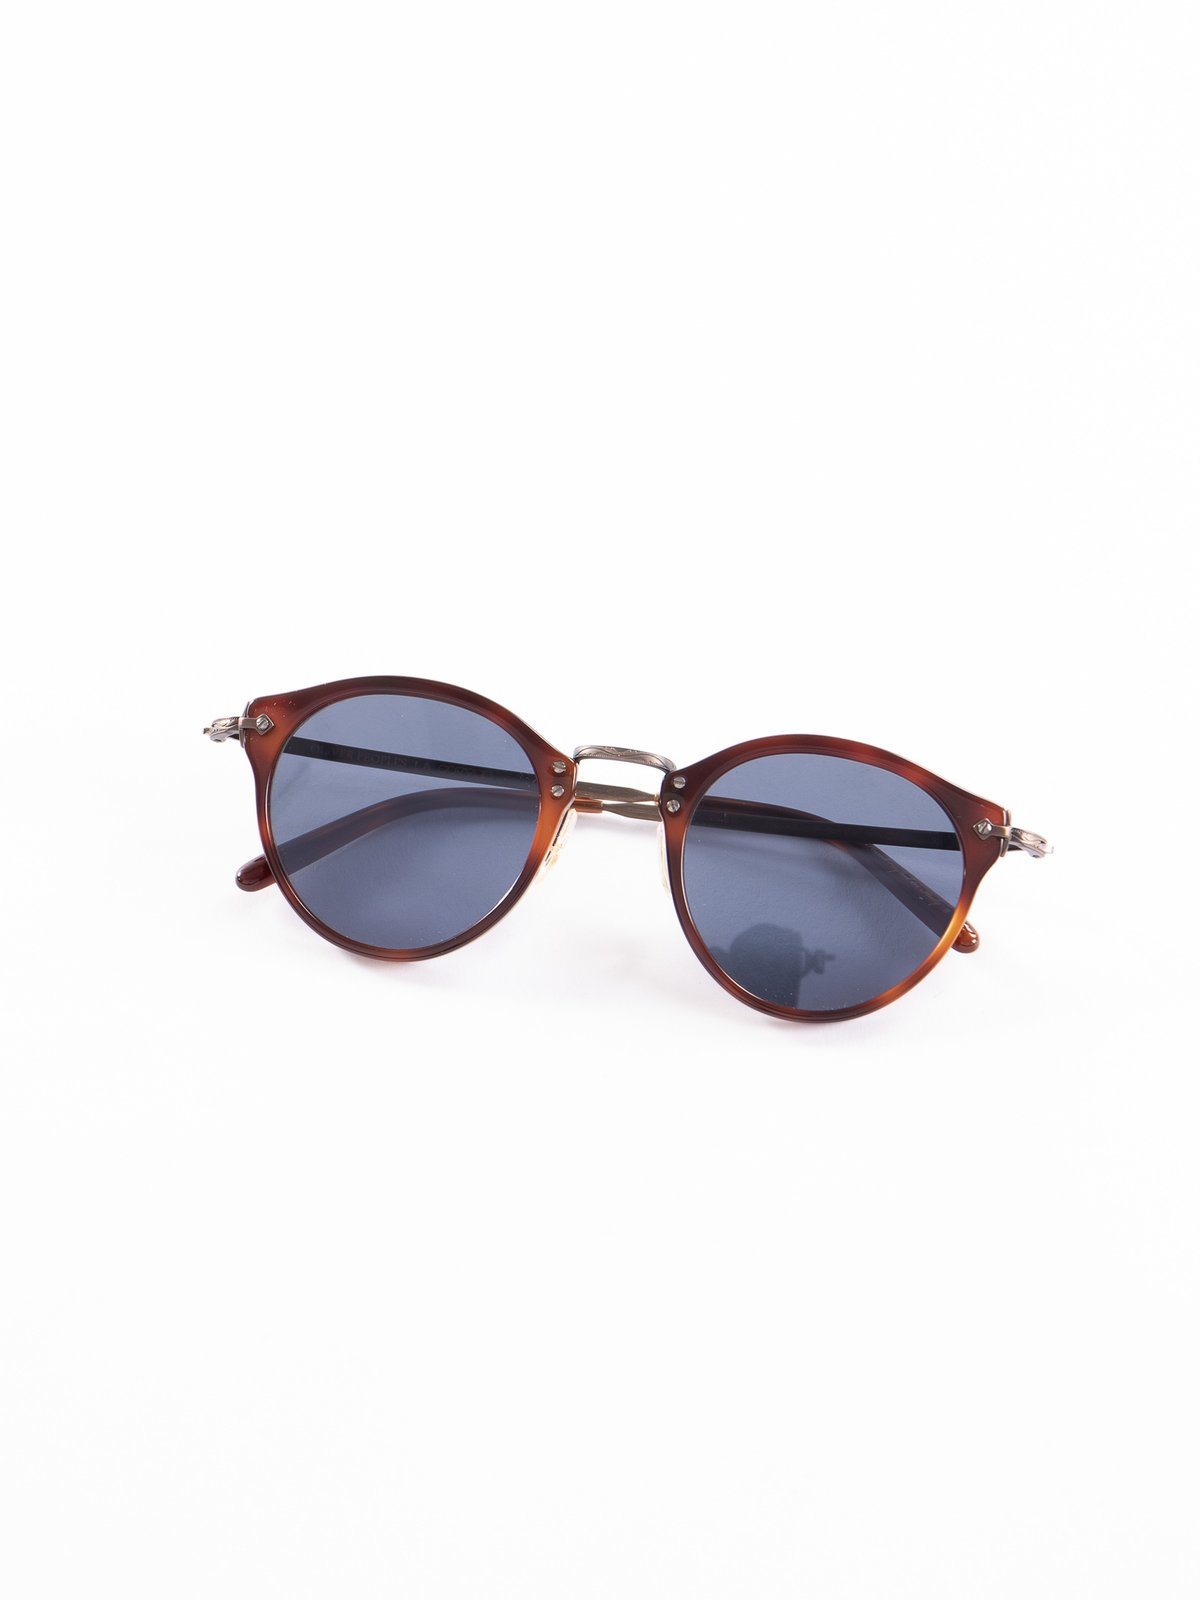 Dark Mahogany–Bronze–Blue OP–505 Sunglasses - Image 1